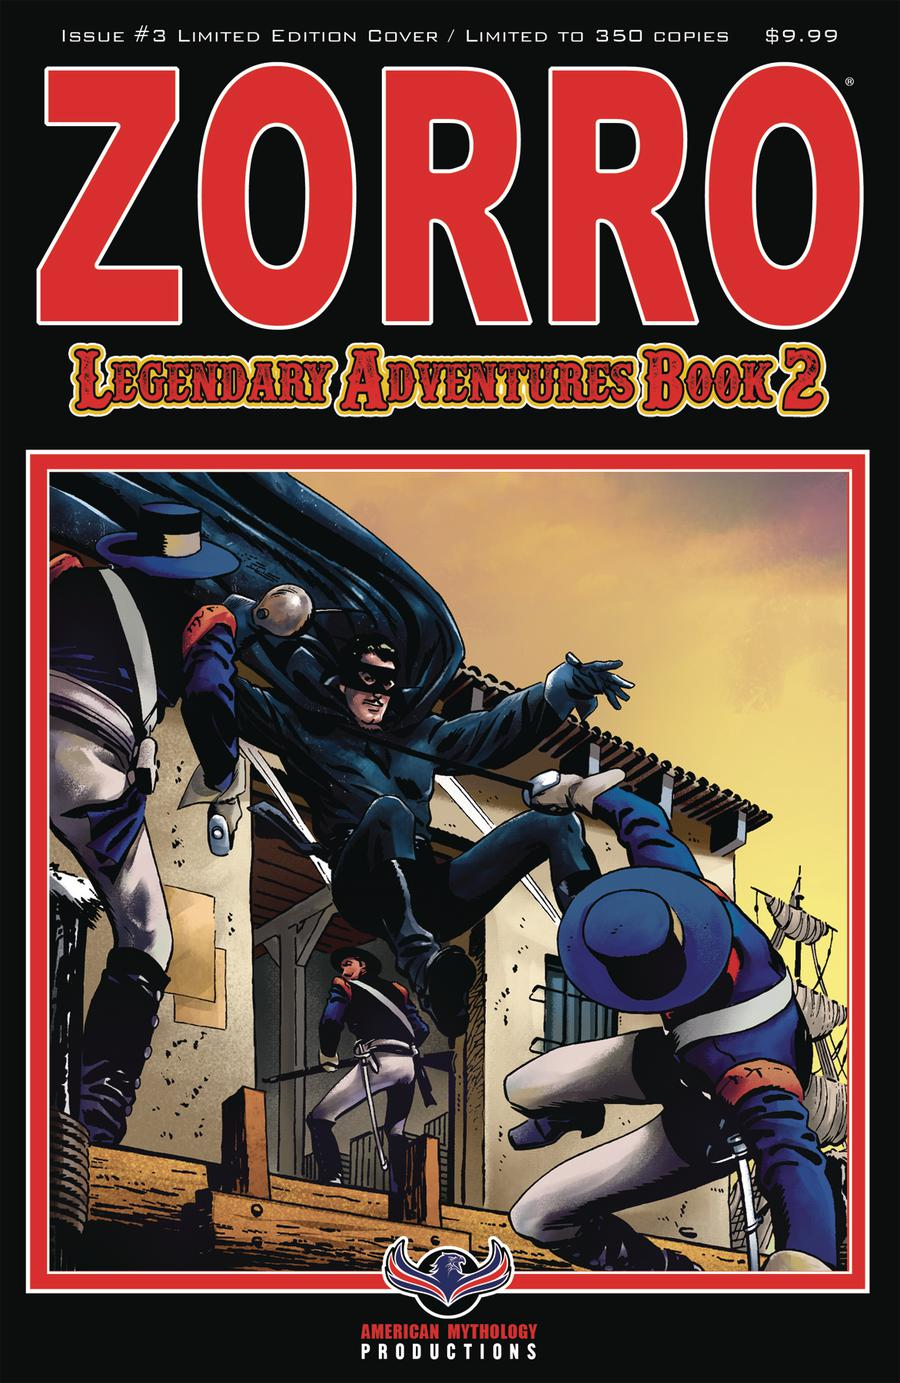 Zorro Legendary Adventures Book 2 #3 Cover B Variant Blazing Blades Of Zorro Limited Edition Cover